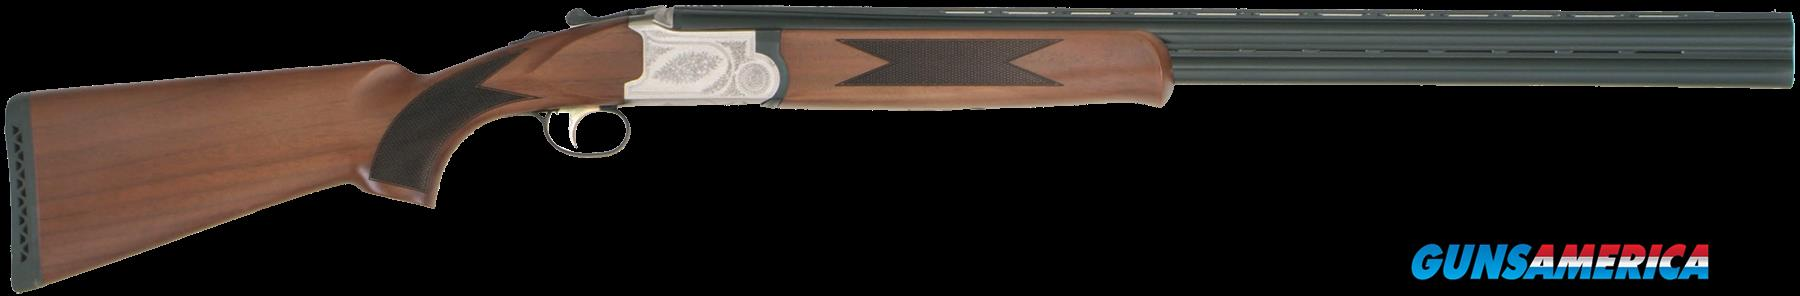 "TriStar 33308 Hunter EX Over/Under 16 Gauge 28"" 2.75"" Turkish Walnut Stk Steel  Guns > Shotguns > Tristar Shotguns"